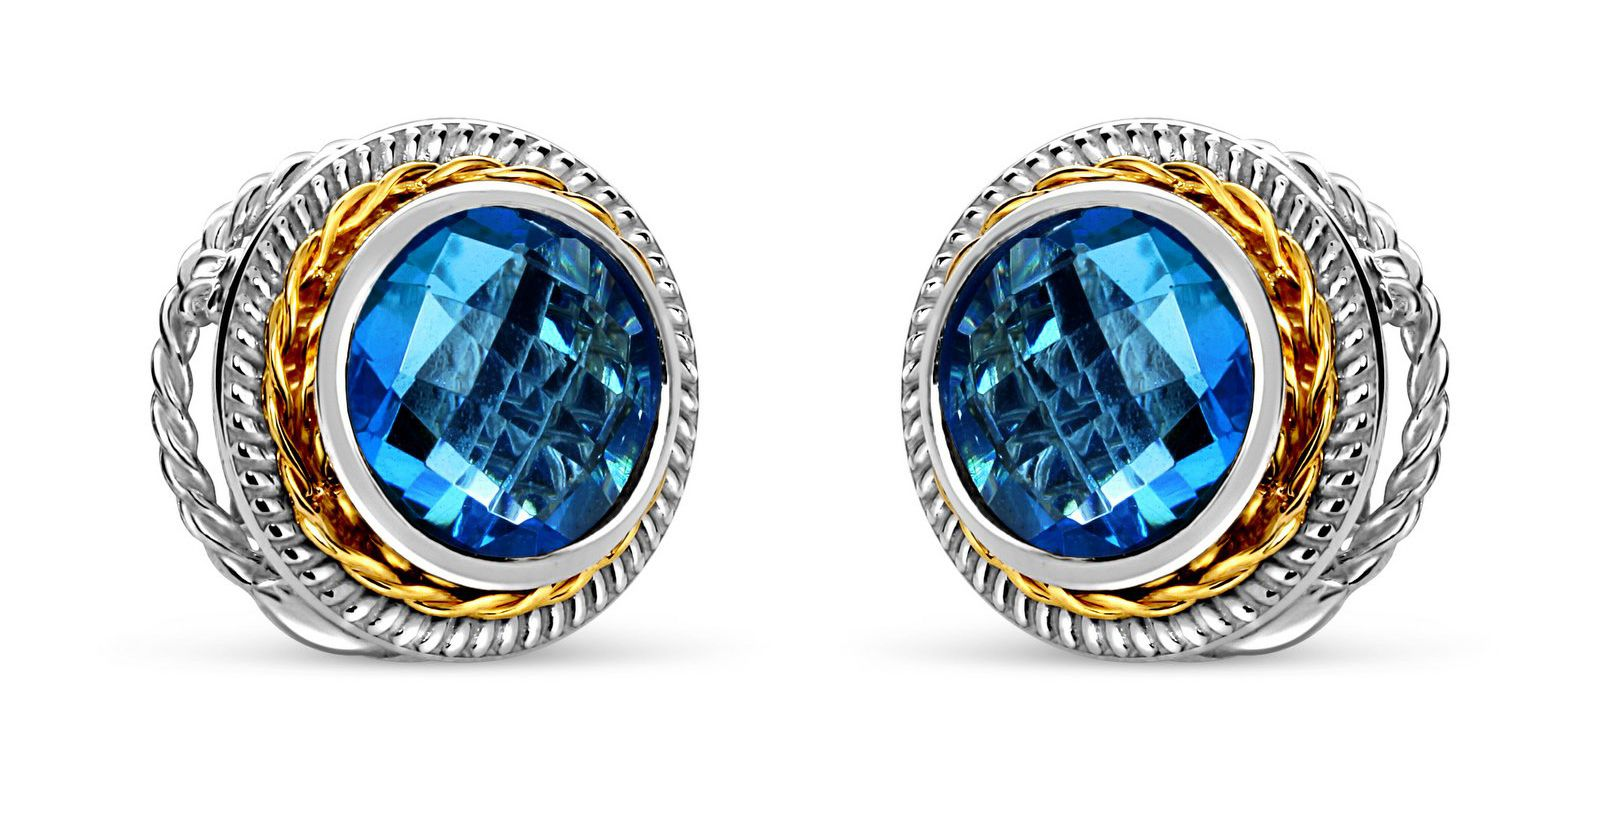 Blue topaz 18 karat gold/sterling silver earrings | ShopInde